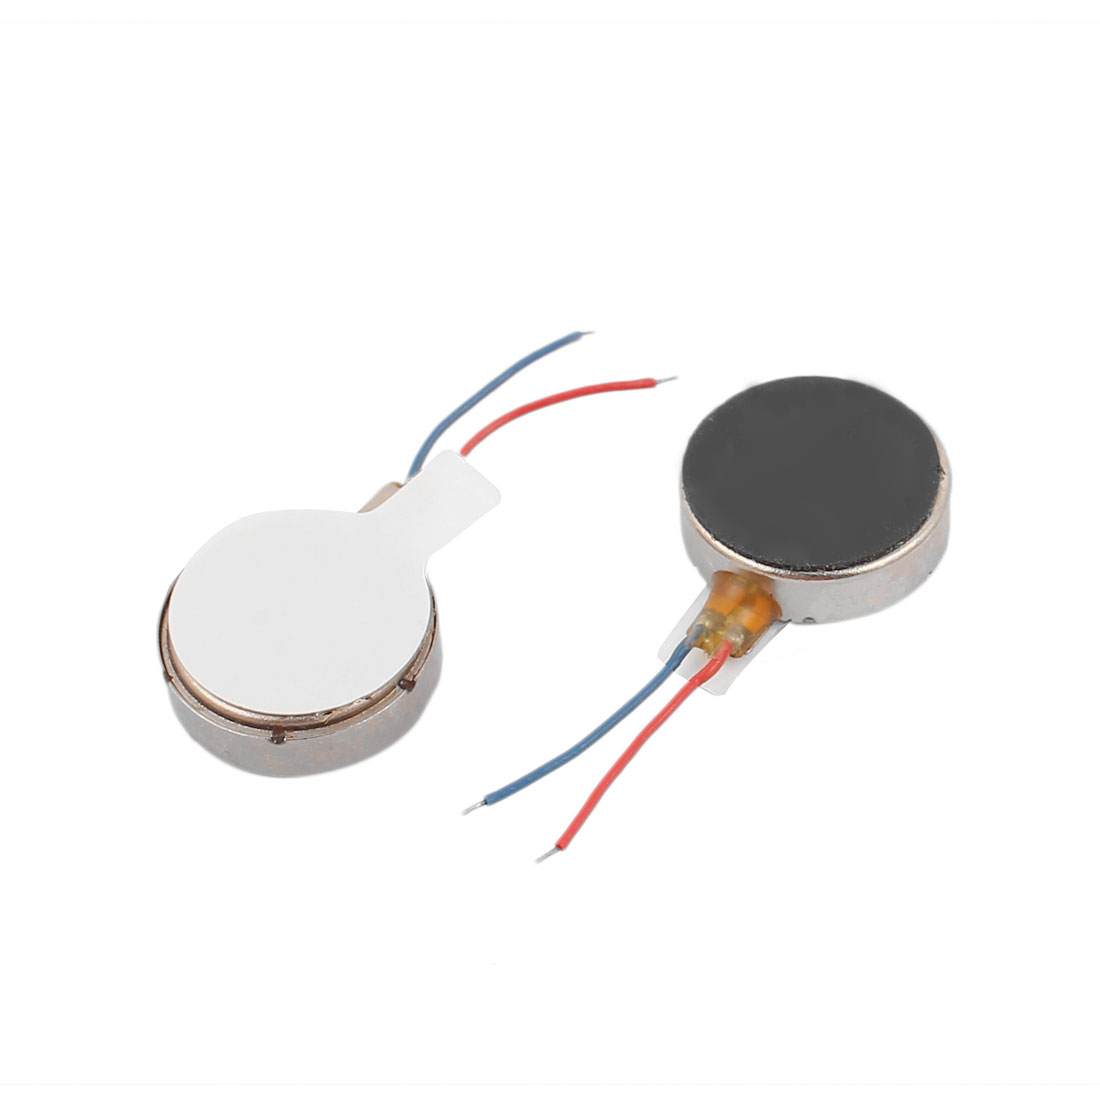 2 Pcs A1234 DC 1.5-3V Flat Button Shape Vibrating Vibration Motor for Mobile Phone